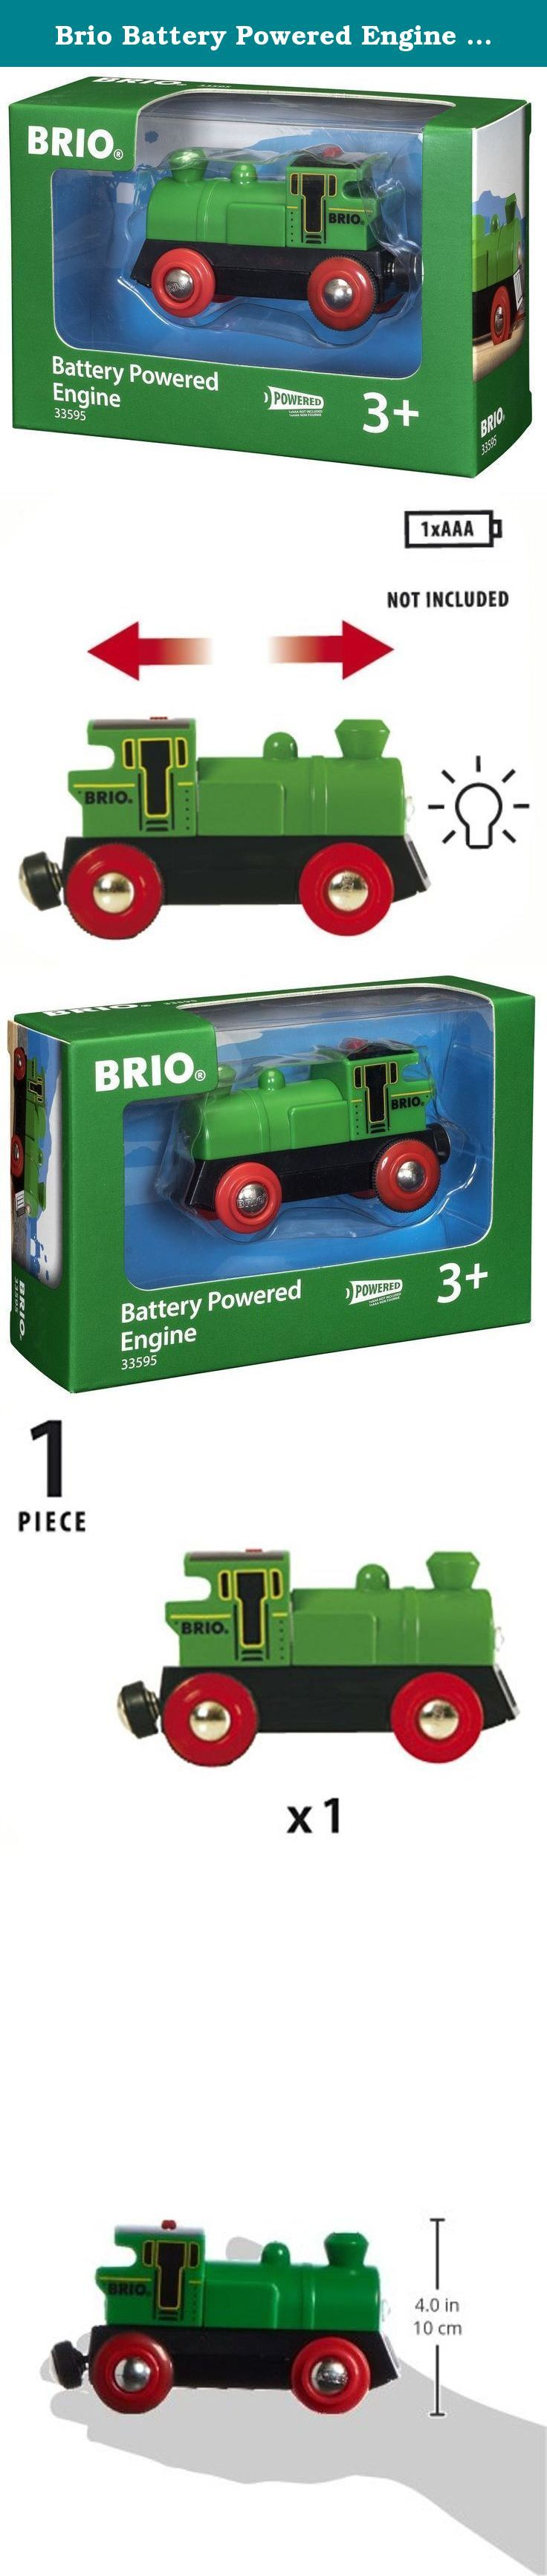 Brio Battery Powered Engine Train. Founded in Sweden in 1884, Brio makes the highest quality wooden toys that have delighted children and created happy memories for generations. Both educational and fun, Brio's uncompromising focus on design, quality and craftsmanship create toys of lasting value that stimulate creativity and imagination. Engaging play and learning are integral themes in all Brio toys, satisfying a child's educational needs and growing with them through their various…